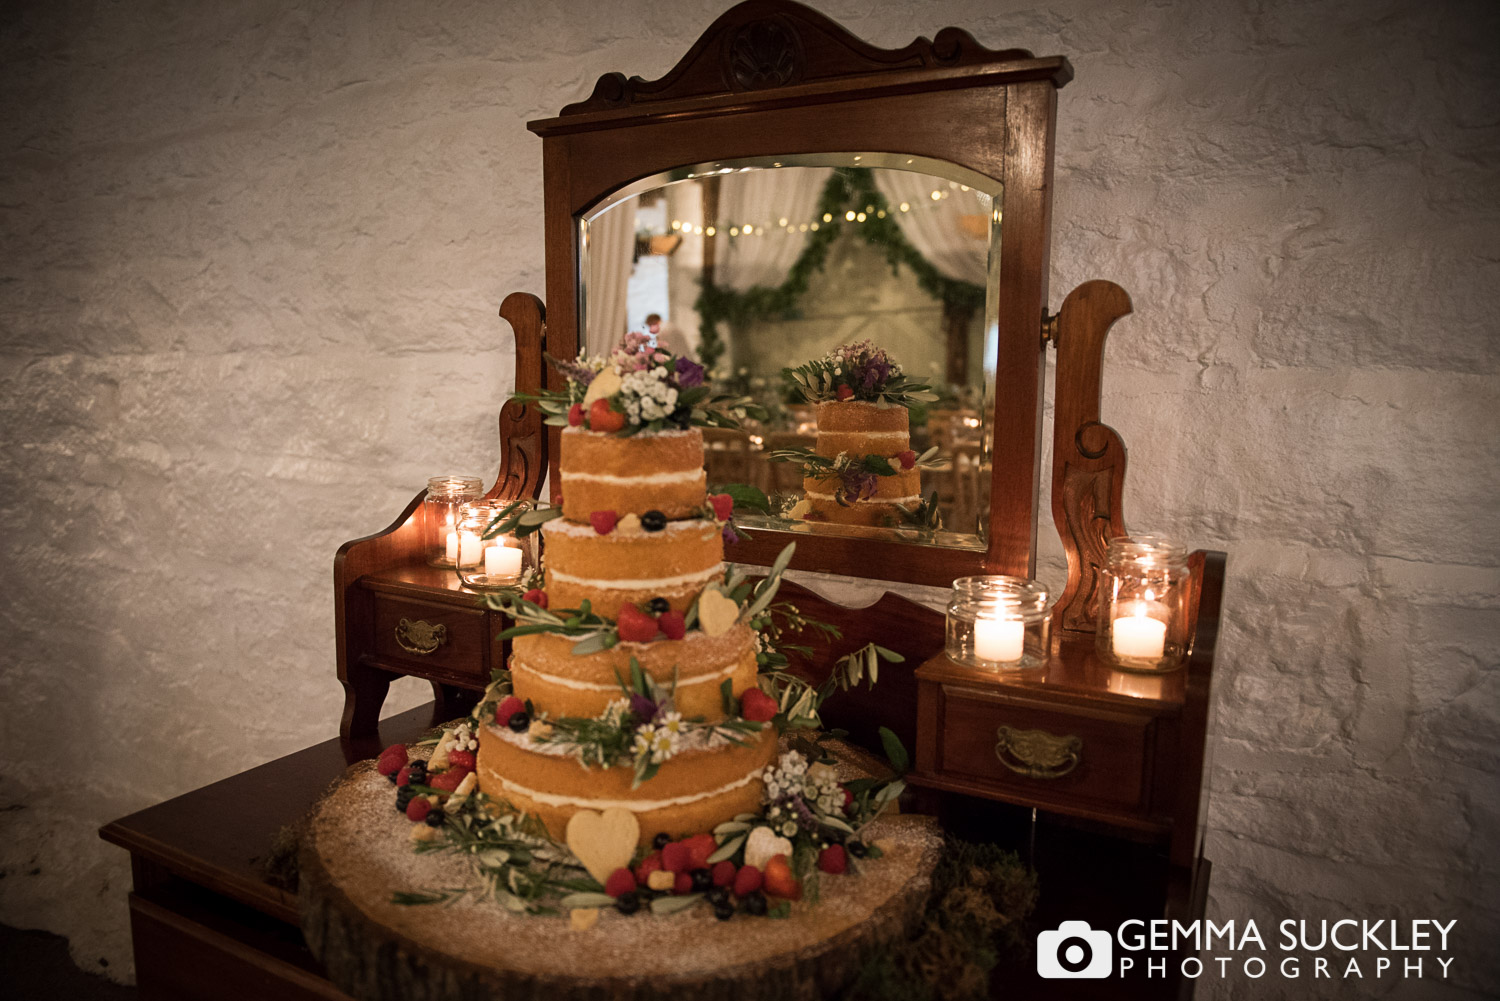 East-riddlesden-hall-wedding-cake.JPG